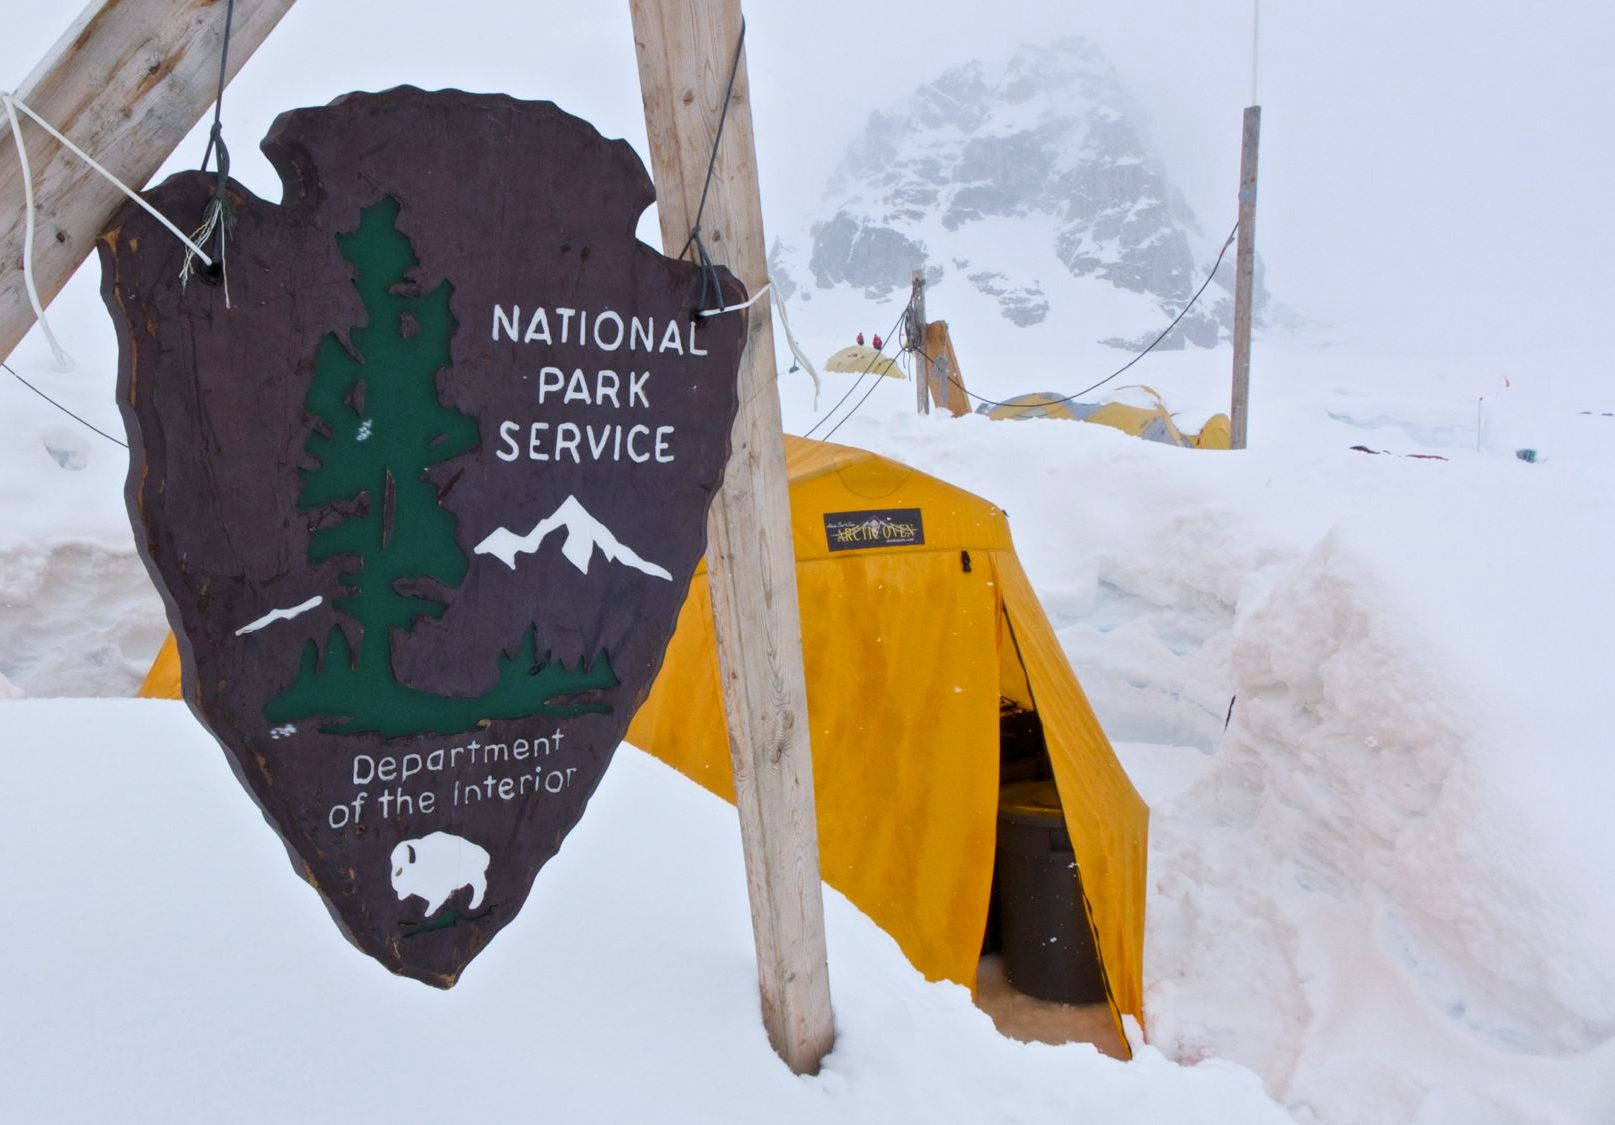 An NPS Arrowhead plaque demarks the location of the snowy ranger camp